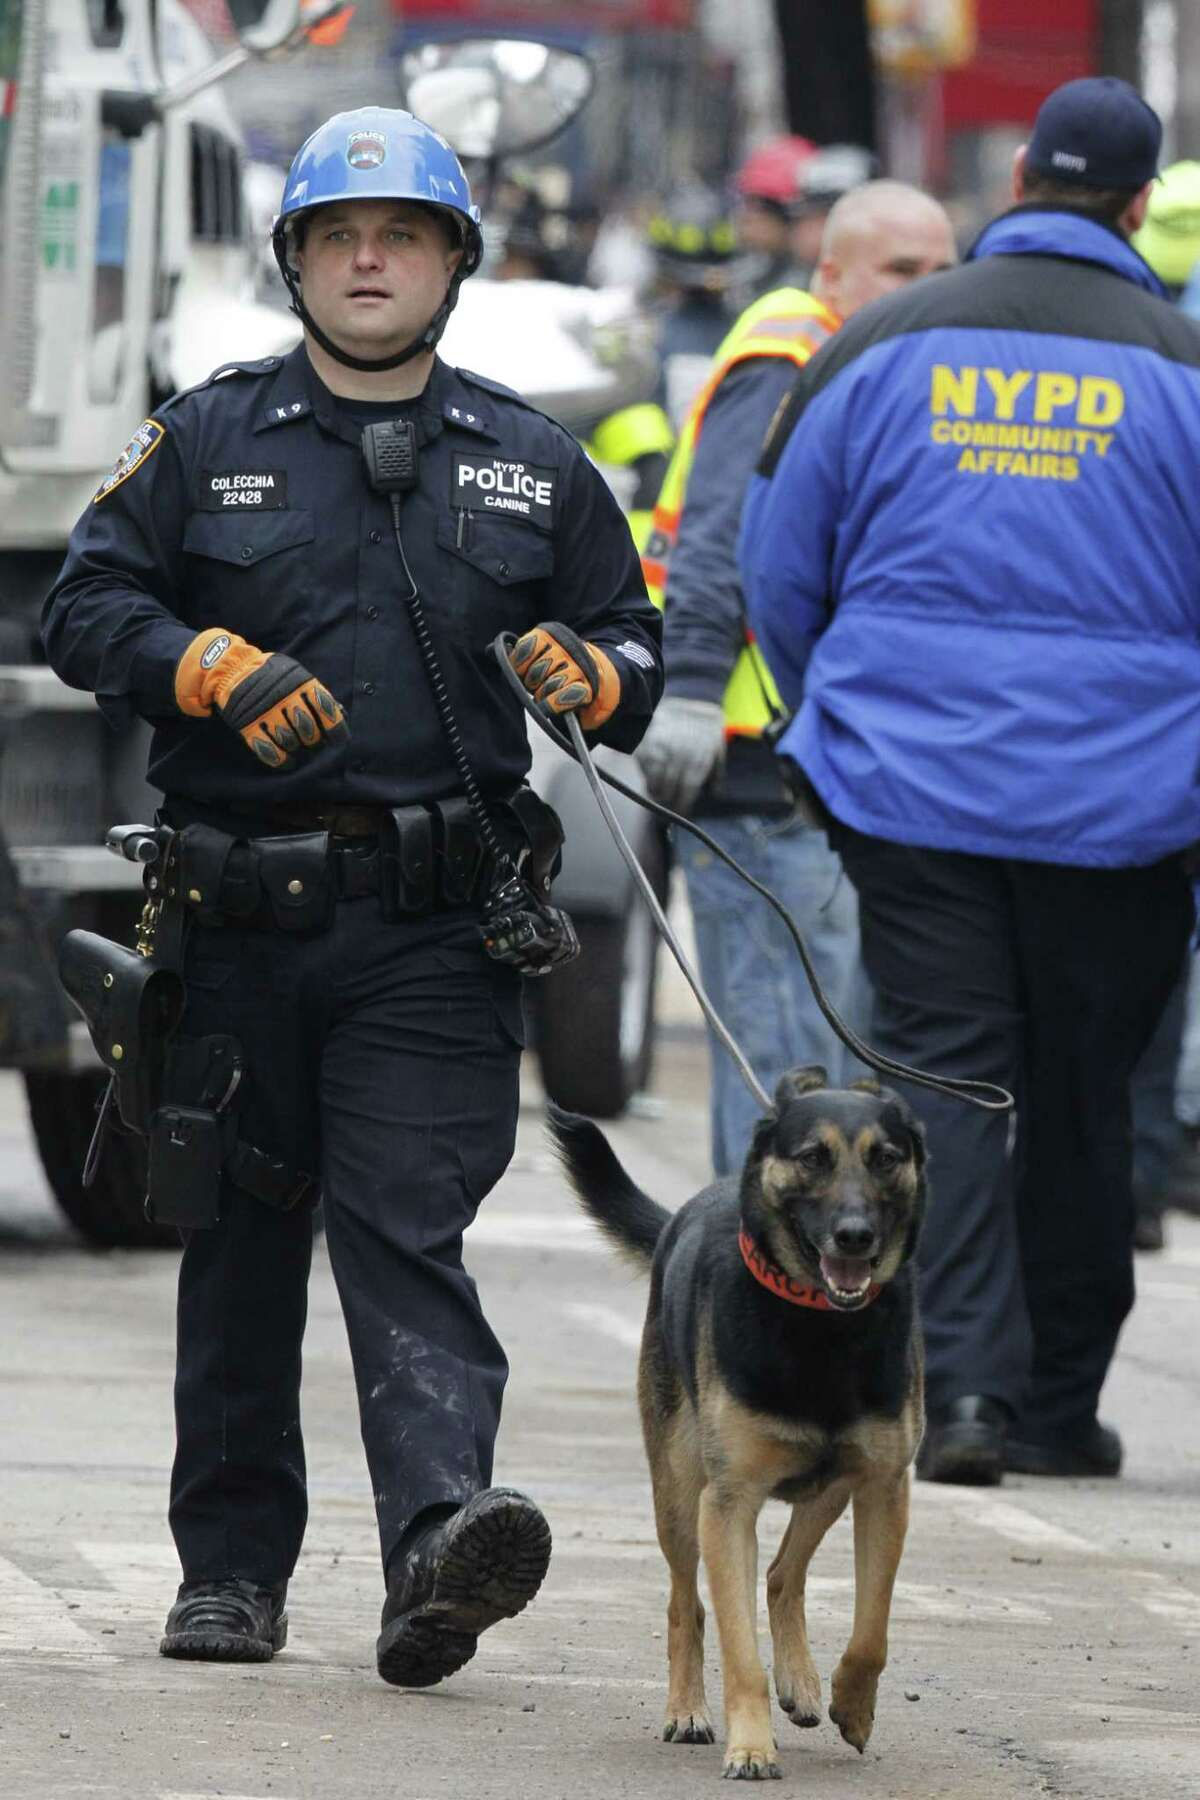 A search dog walks around the site of a building collapse in the East Village neighborhood of New York, Friday, March 27, 2015. Nineteen people were injured, four critically, after the powerful blast and fire sent flames soaring and debris flying Thursday afternoon. Preliminary evidence suggested that a gas explosion amid plumbing and gas work inside the building was to blame.